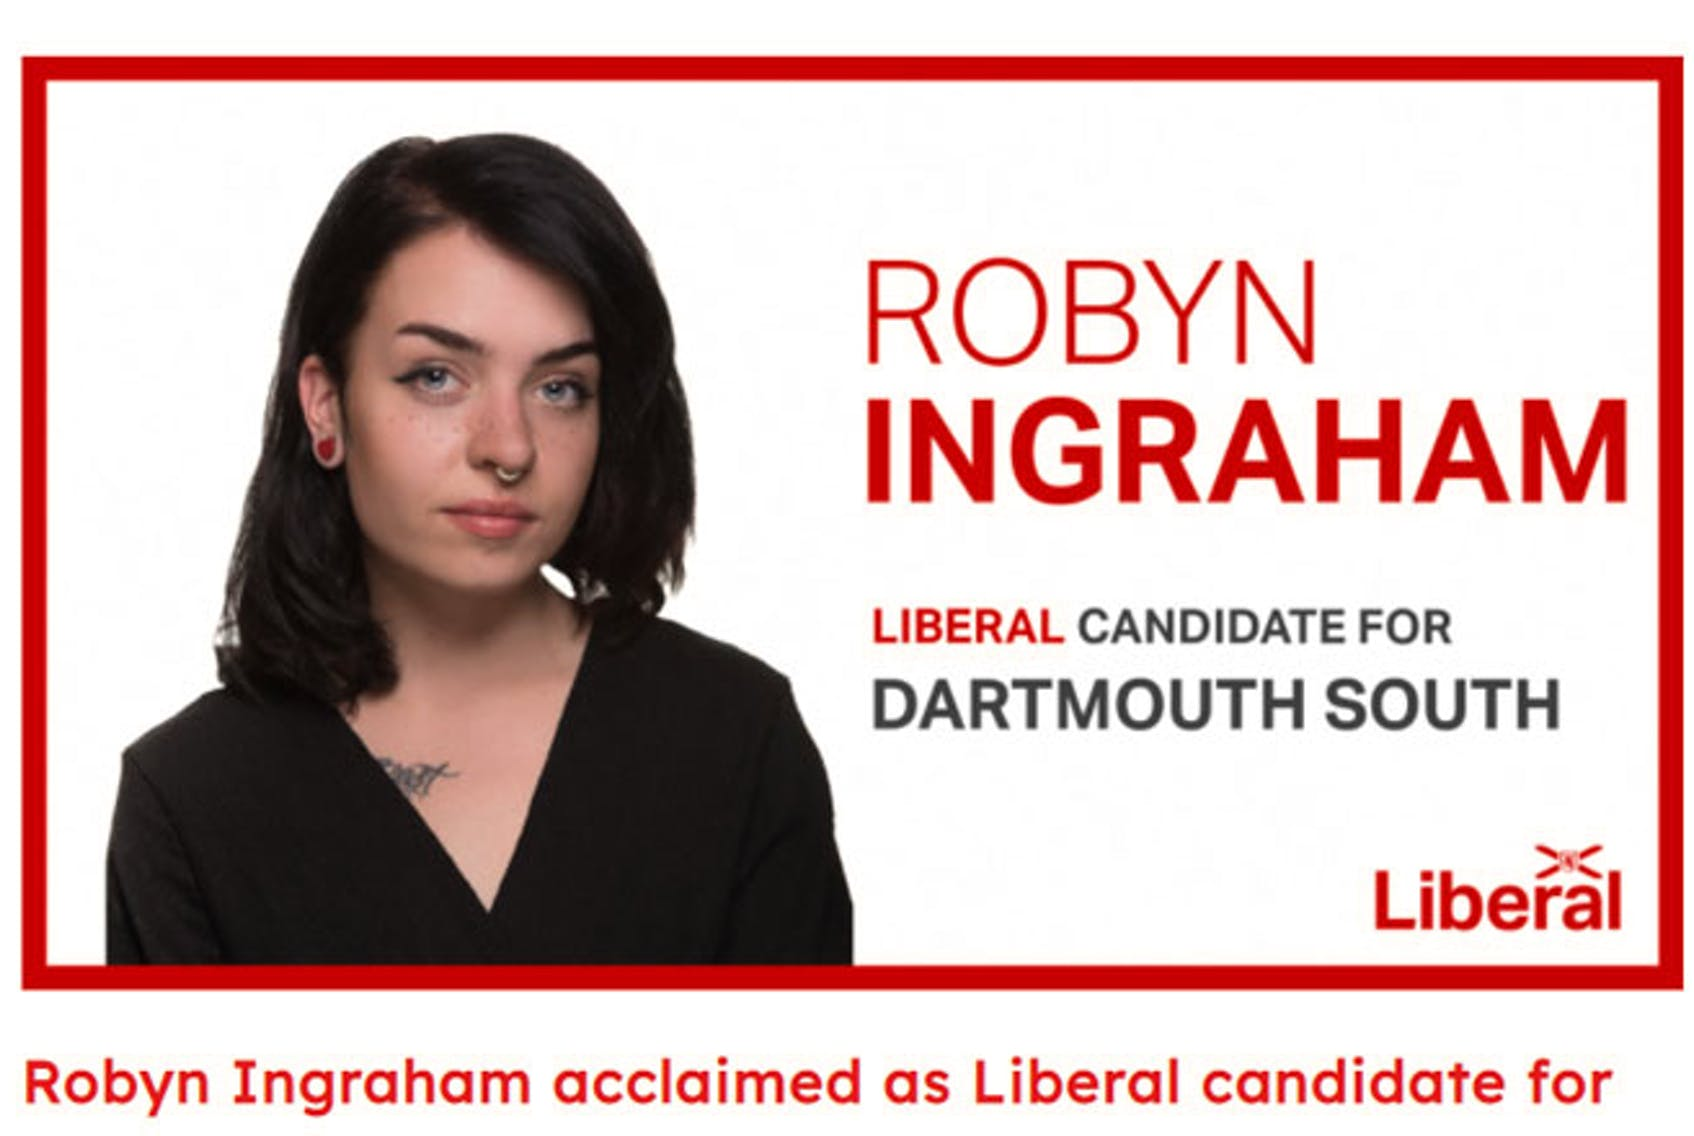 A screenshot from the Liberal Party of Nova Scotia's website, after Robyn Ingraham was announced as a candidate for Dartmouth South. The post has since been removed.